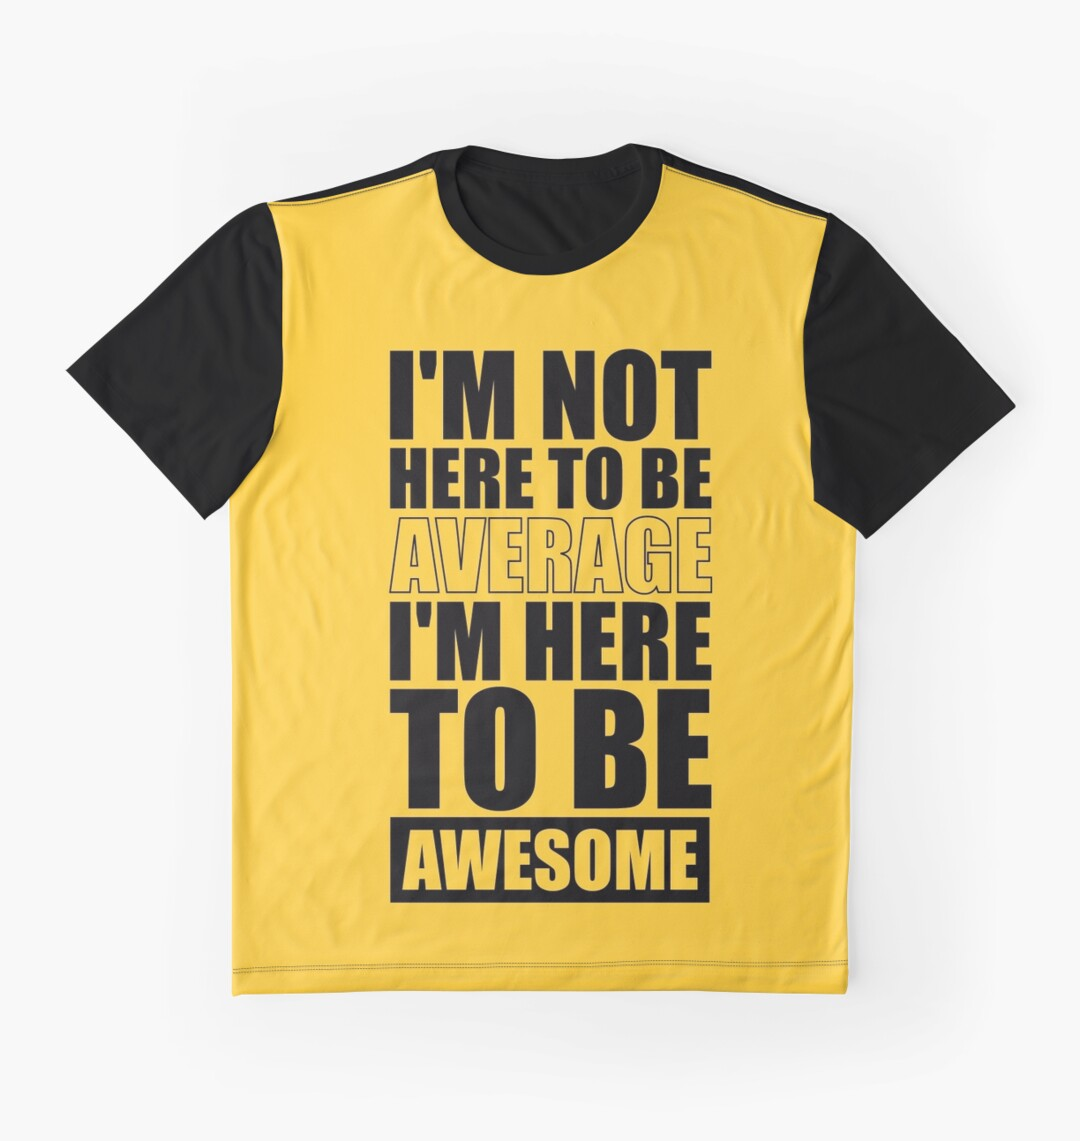 Black t shirt quotes - I M Not Here To Be Average I M Here To Be Awesome Gym Inspirational Quotes Graphic T Shirts